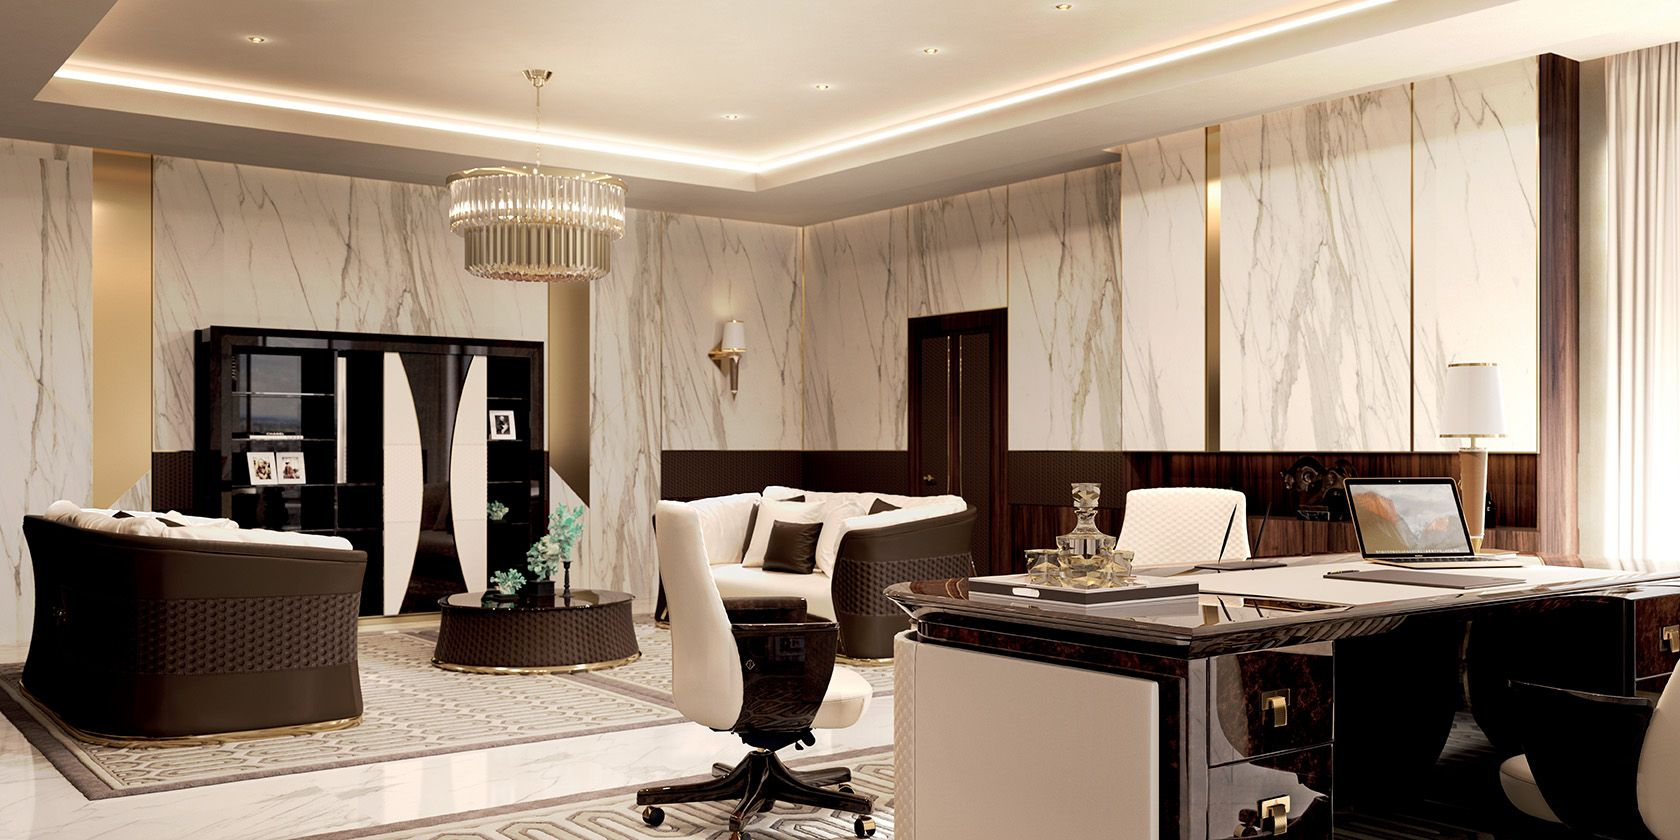 Vogue Collection Www.turri.it Luxury Presidential Office Furniture